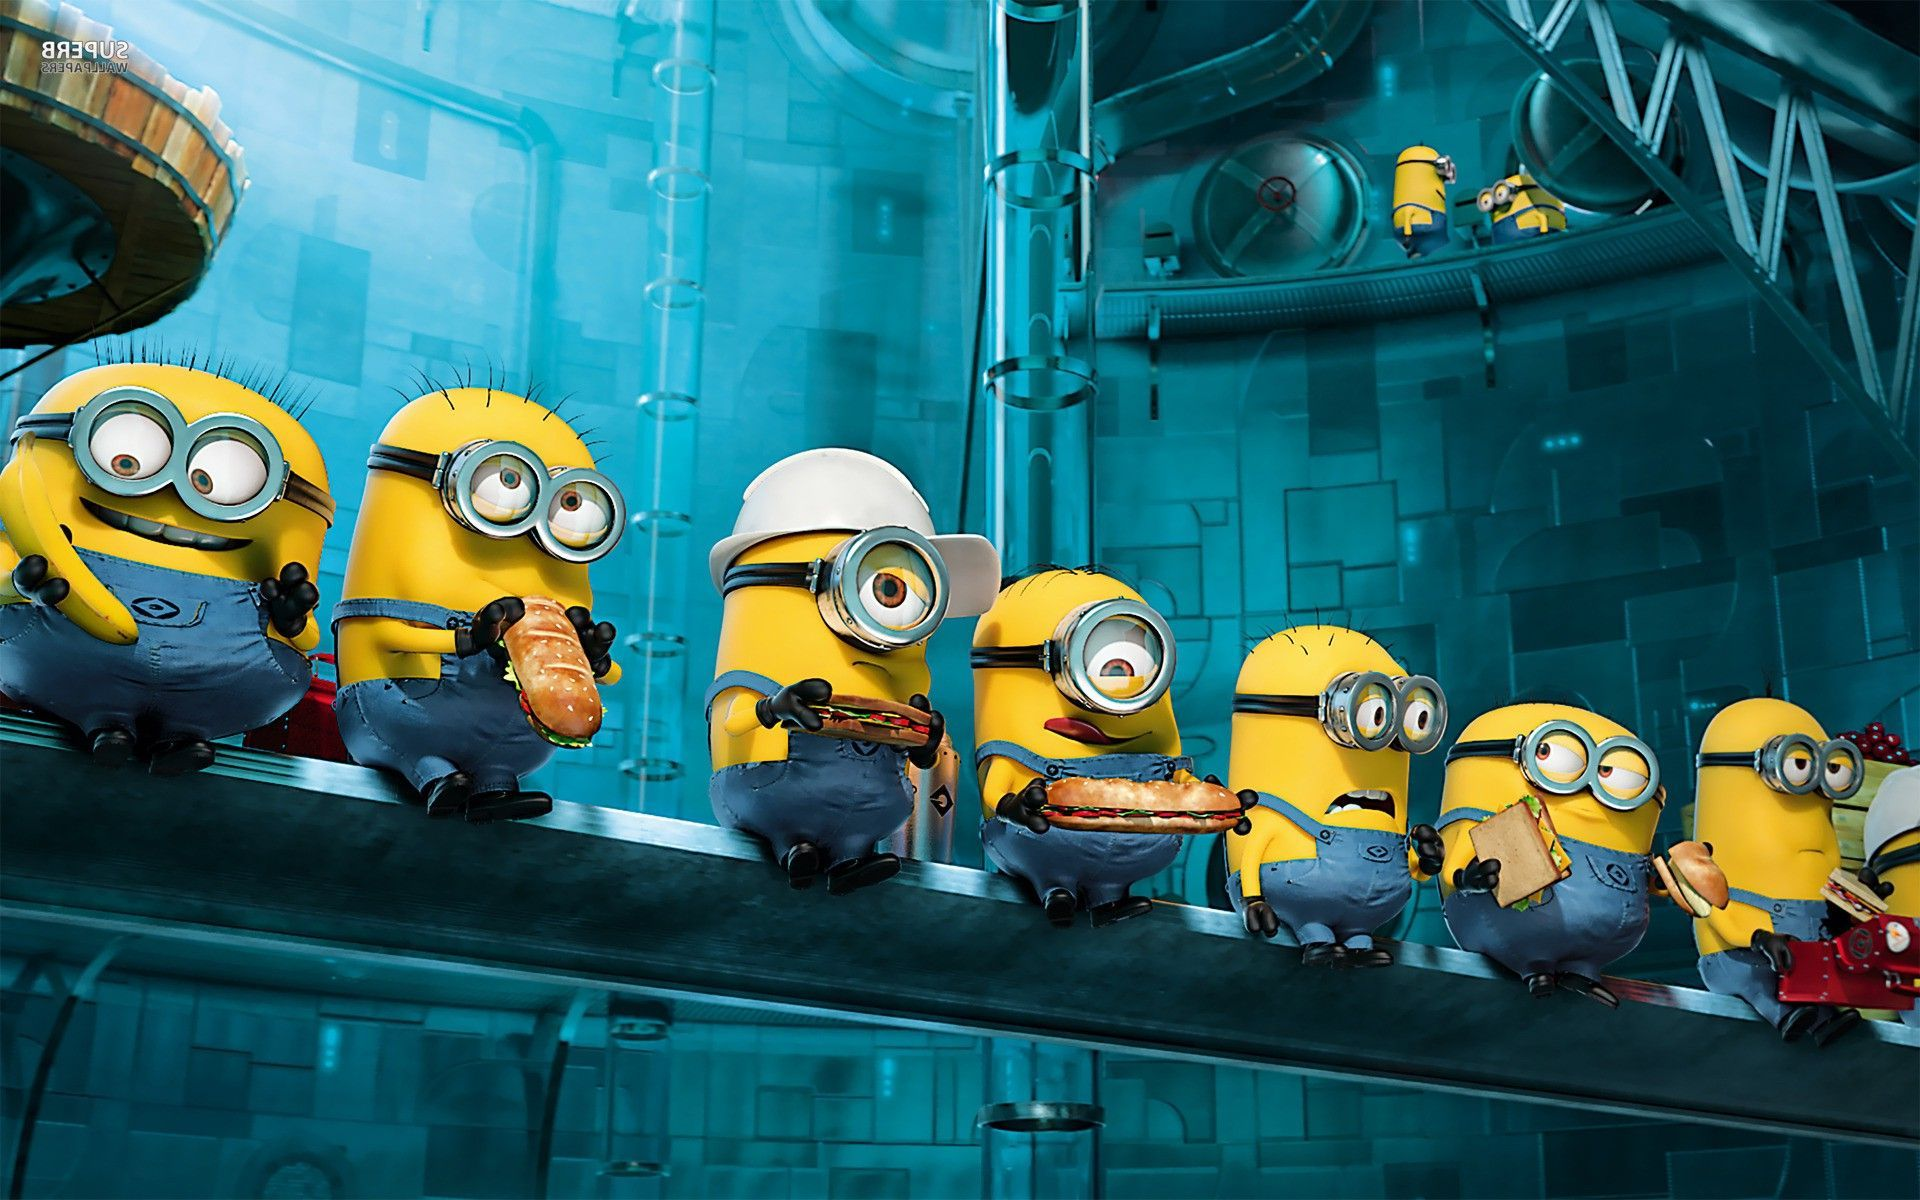 Despicable me minions images minions hd wallpaper and background